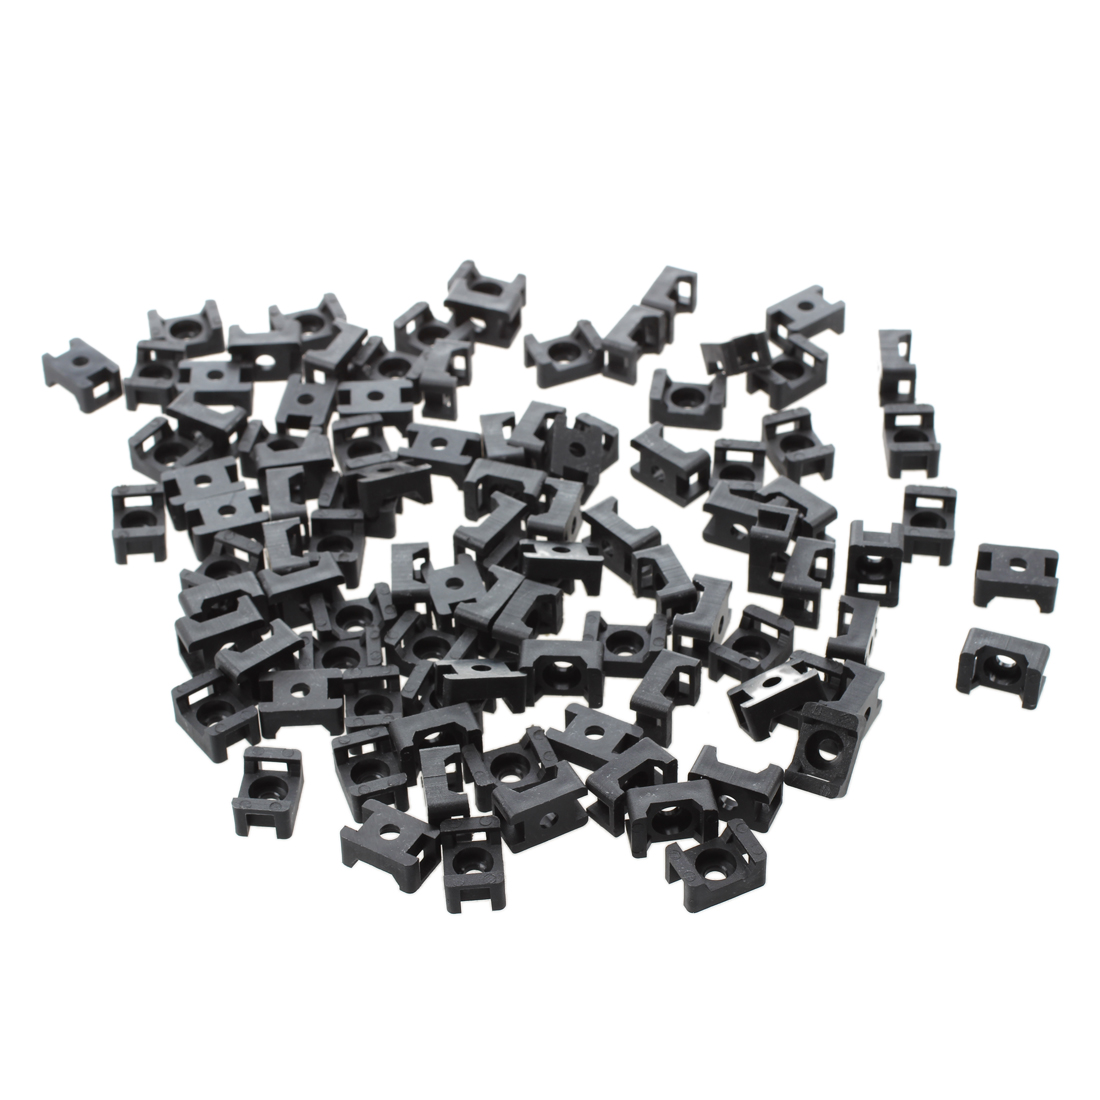 New Black 4.5mm Width Cable Tie Base Saddle Type Mount Wire Holder 100Pcs